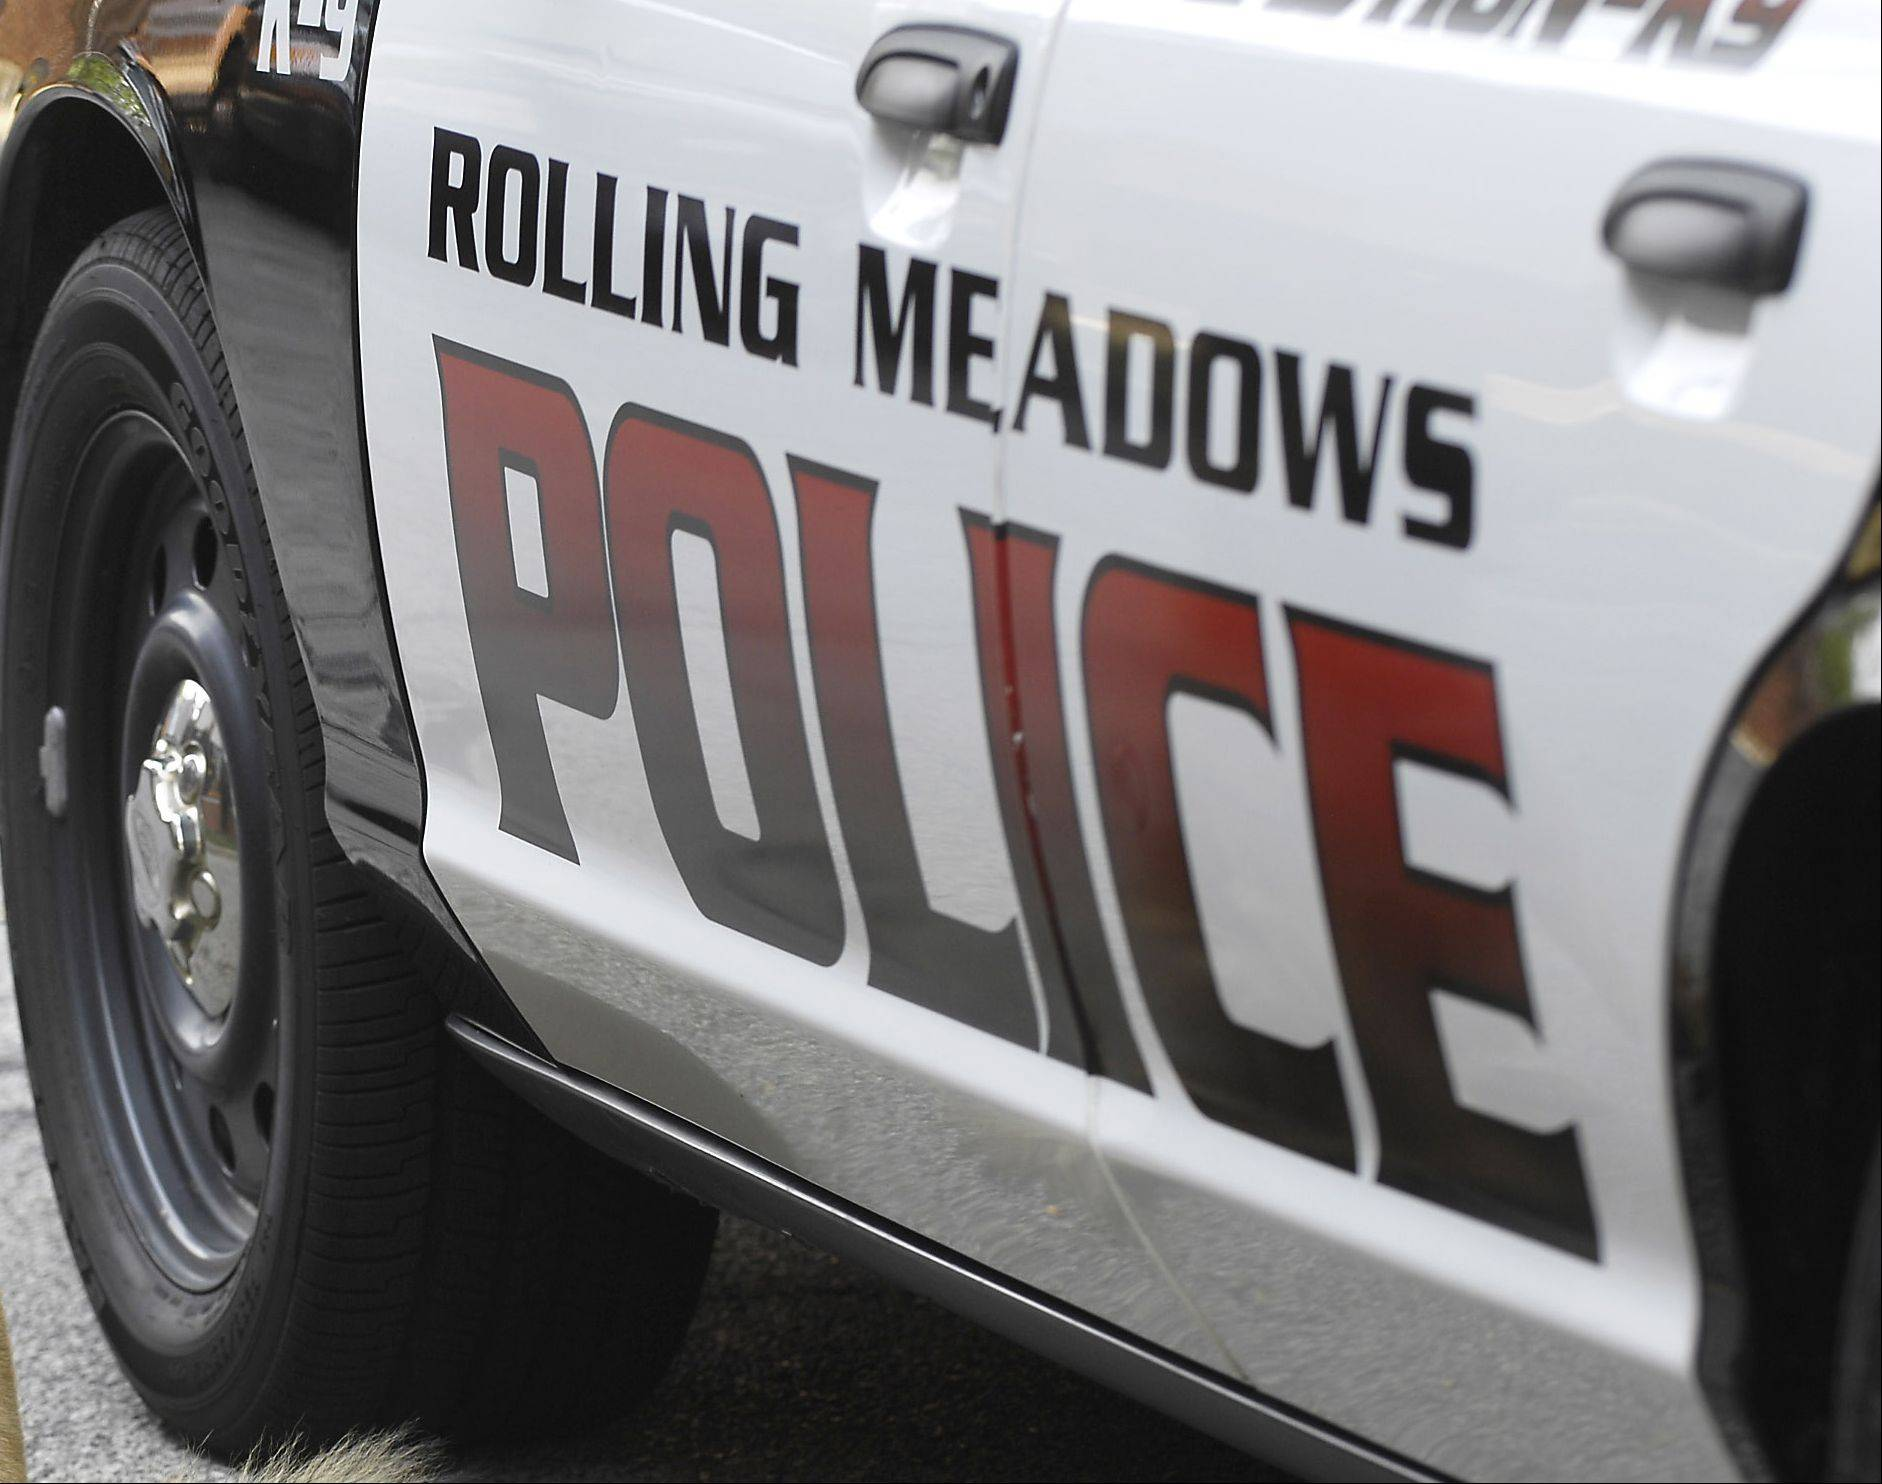 The Rolling Meadows Police Department could add part-time officers to its corps in an effort to relieve full-time officers of administrative tasks and get them back on the streets.